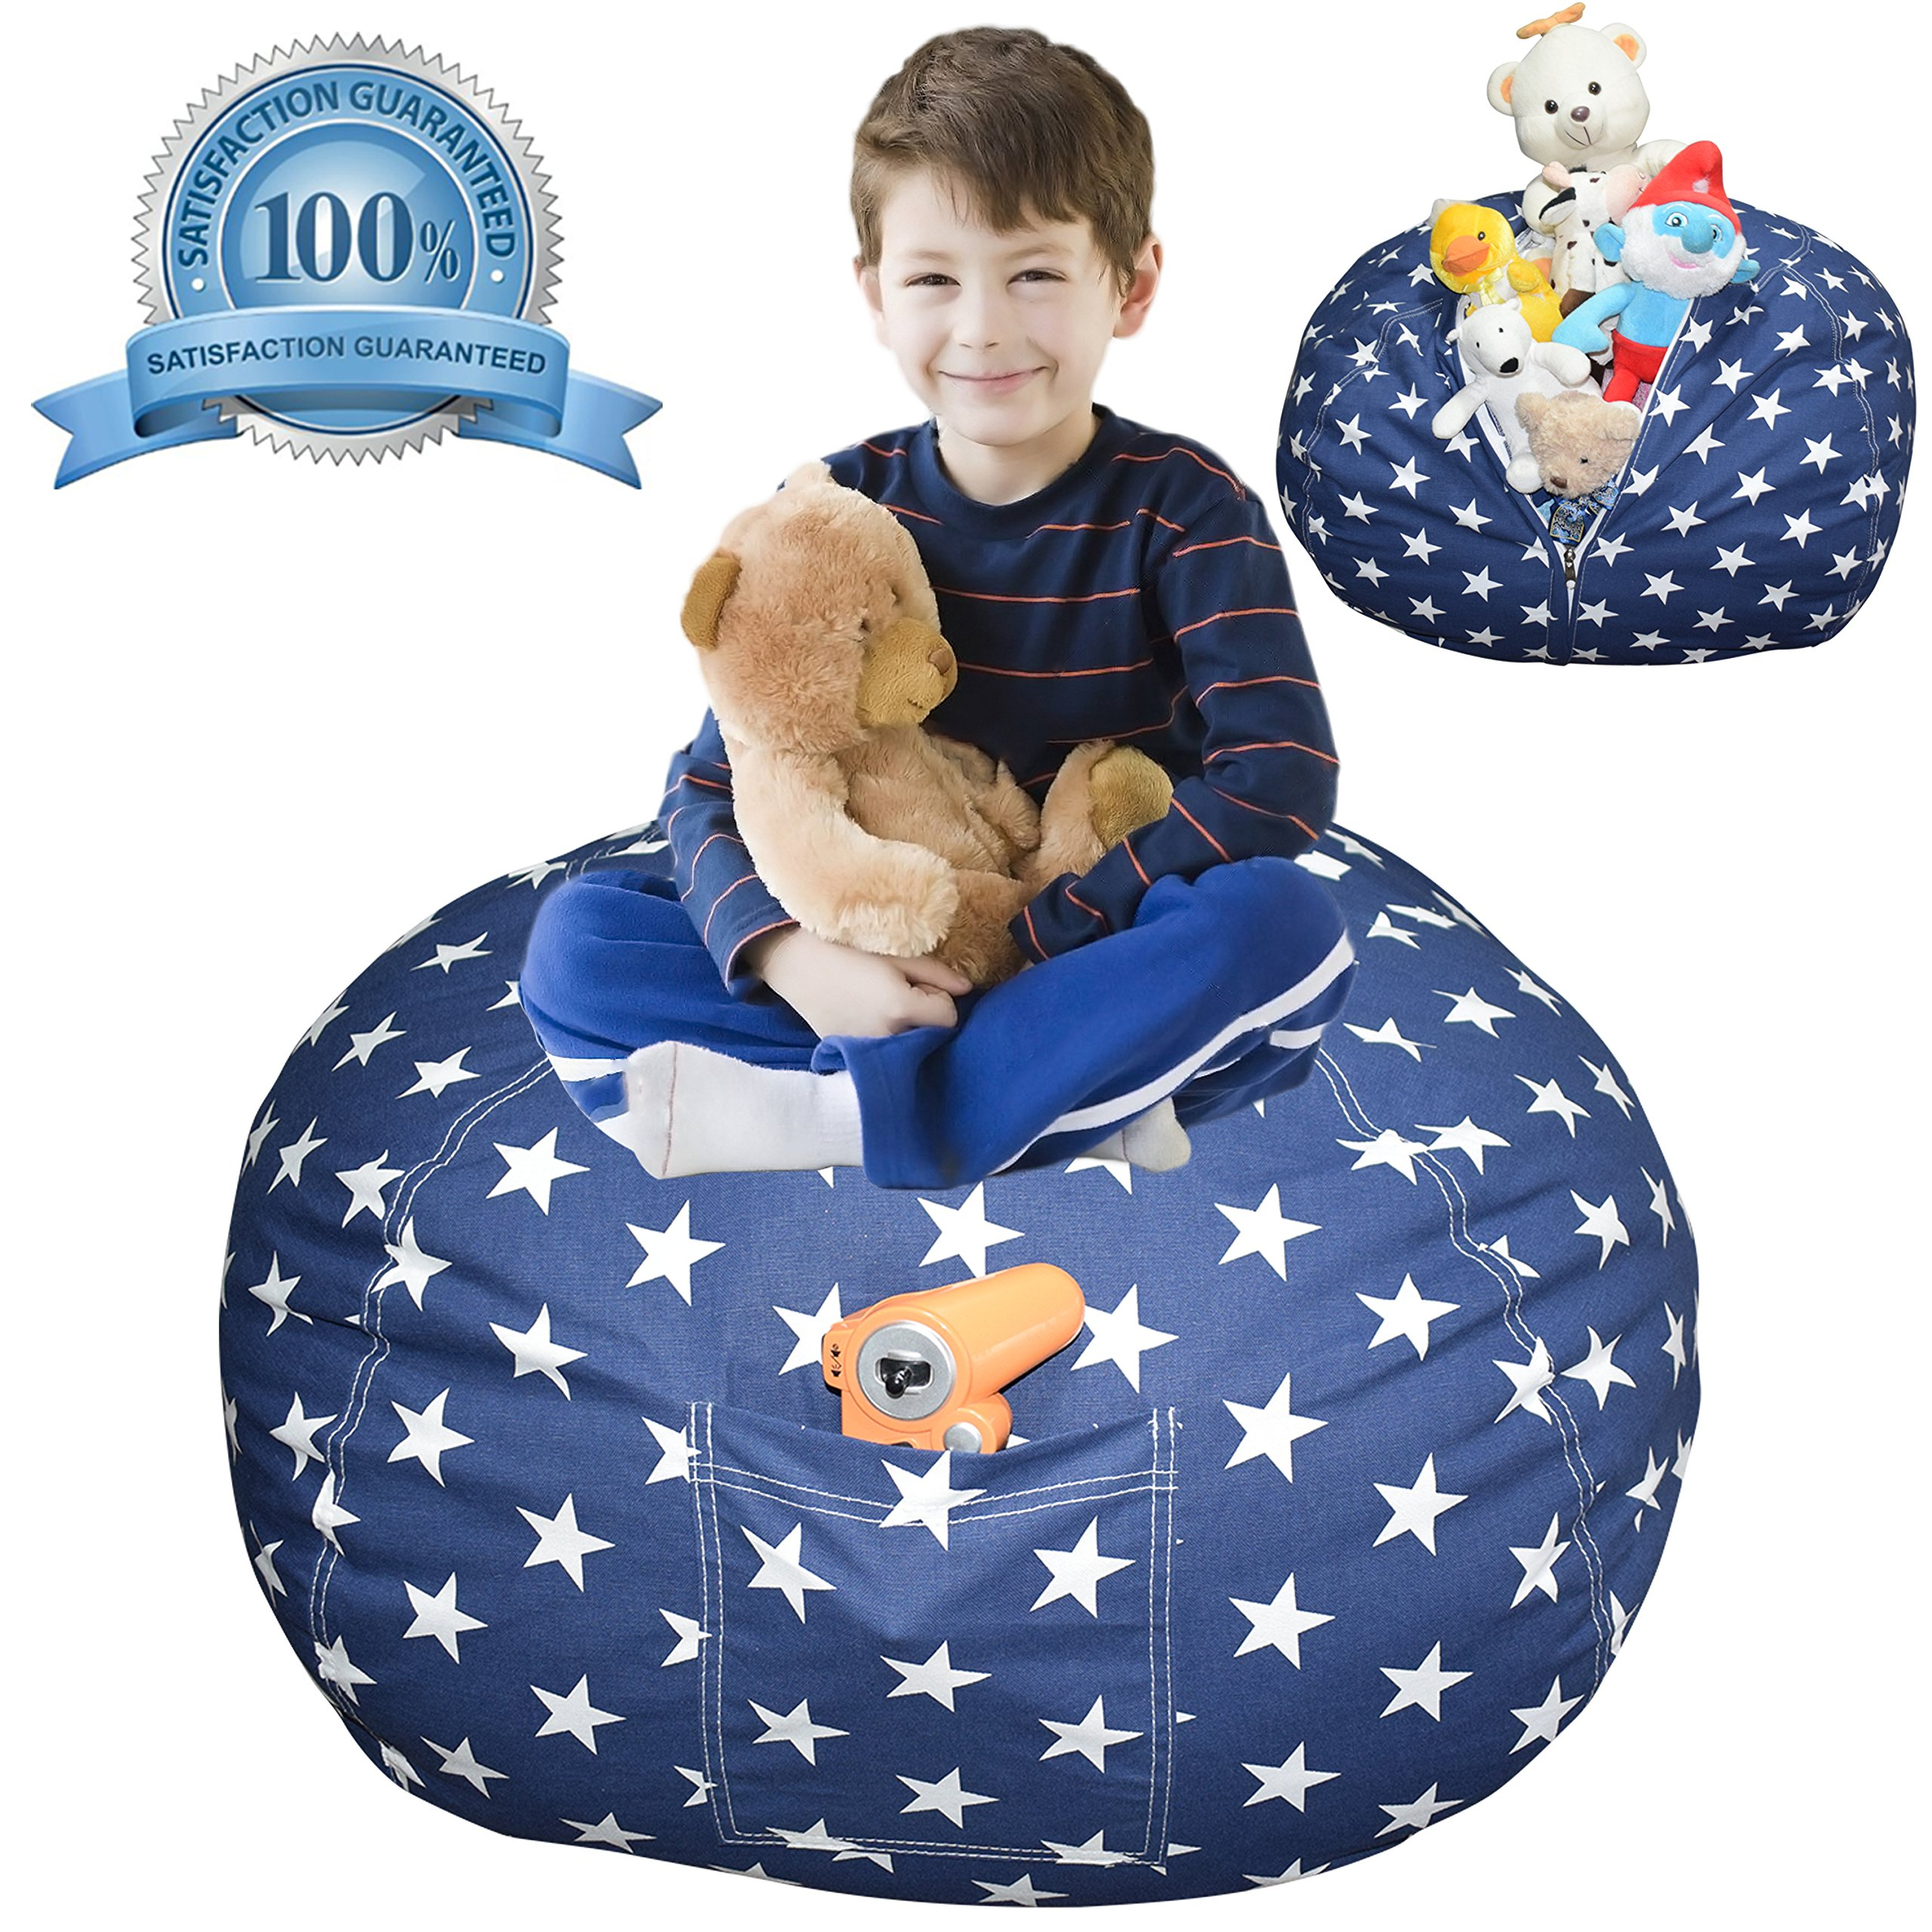 Extra Large Stuffed Animal Storage Bean Bag Cover | Europe Made & Lab Tested Fabric | The Ultimate Storage Solution To Clean Up & Organize Kid's Room | Free E-Book (Unisex Navy Star)